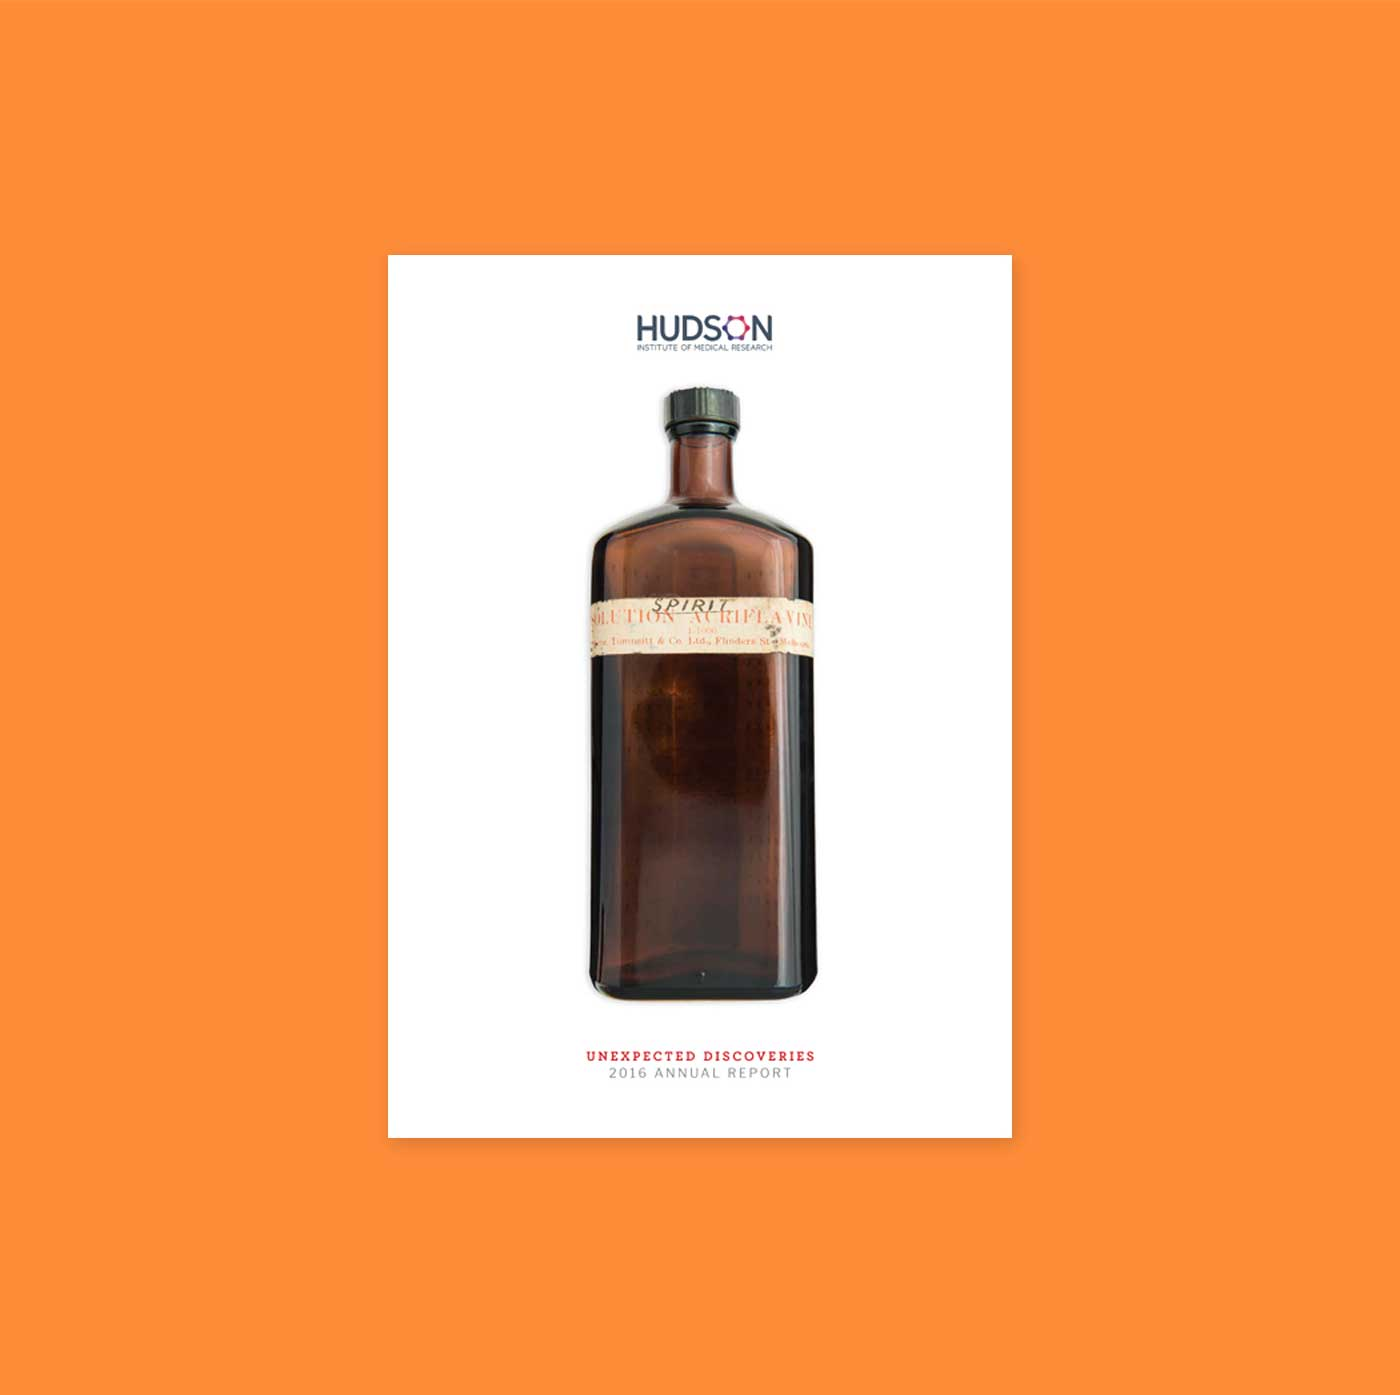 Hudson annual report cover showing old medical bottle